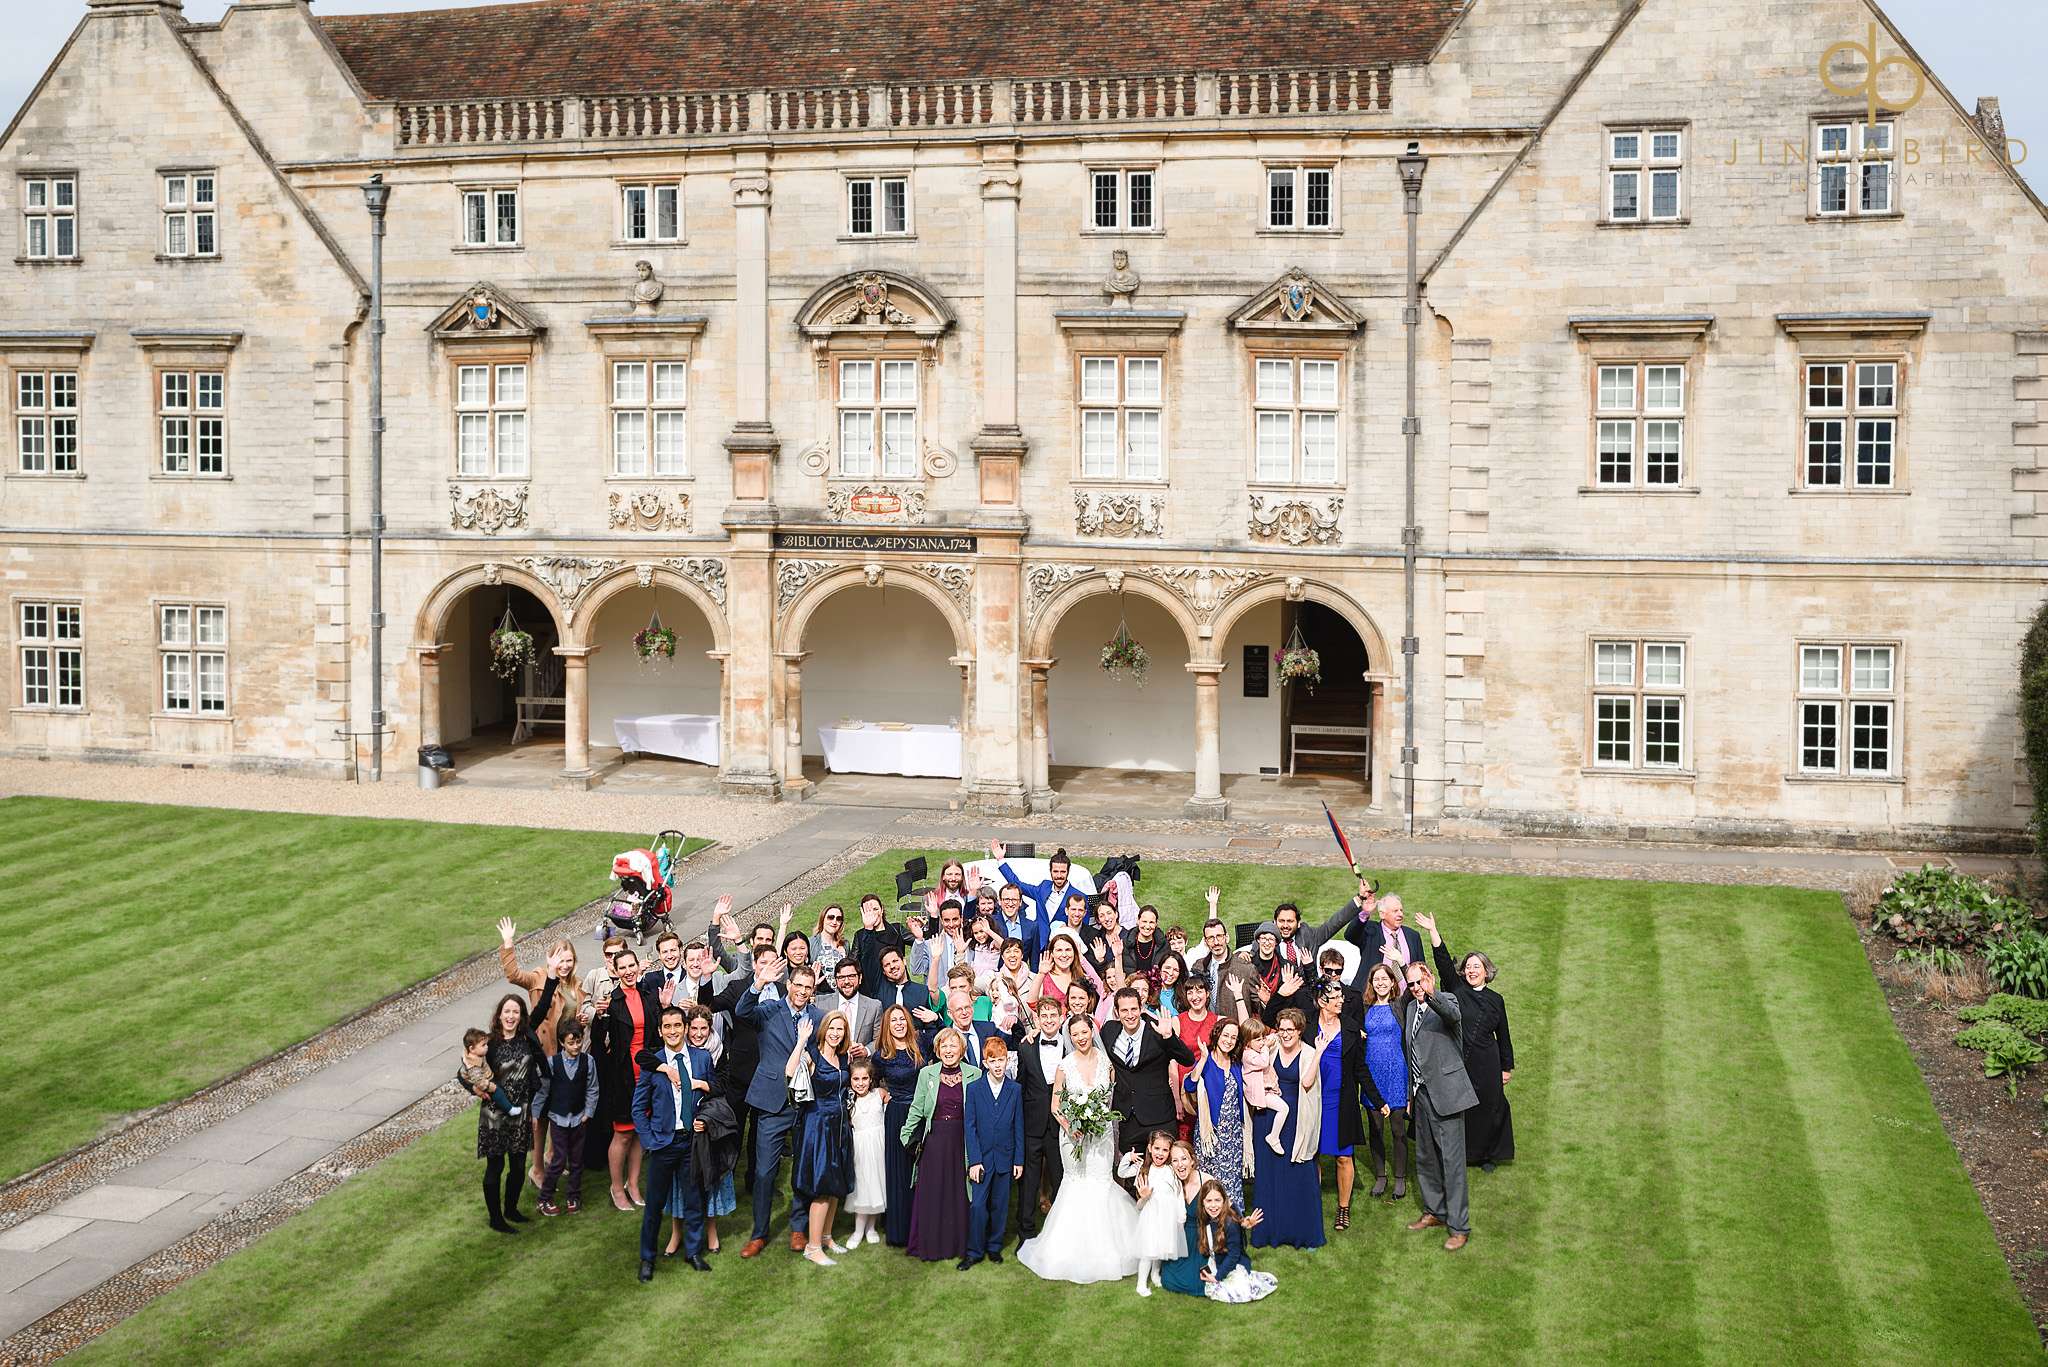 group photo at wedding magdalene college cambridge